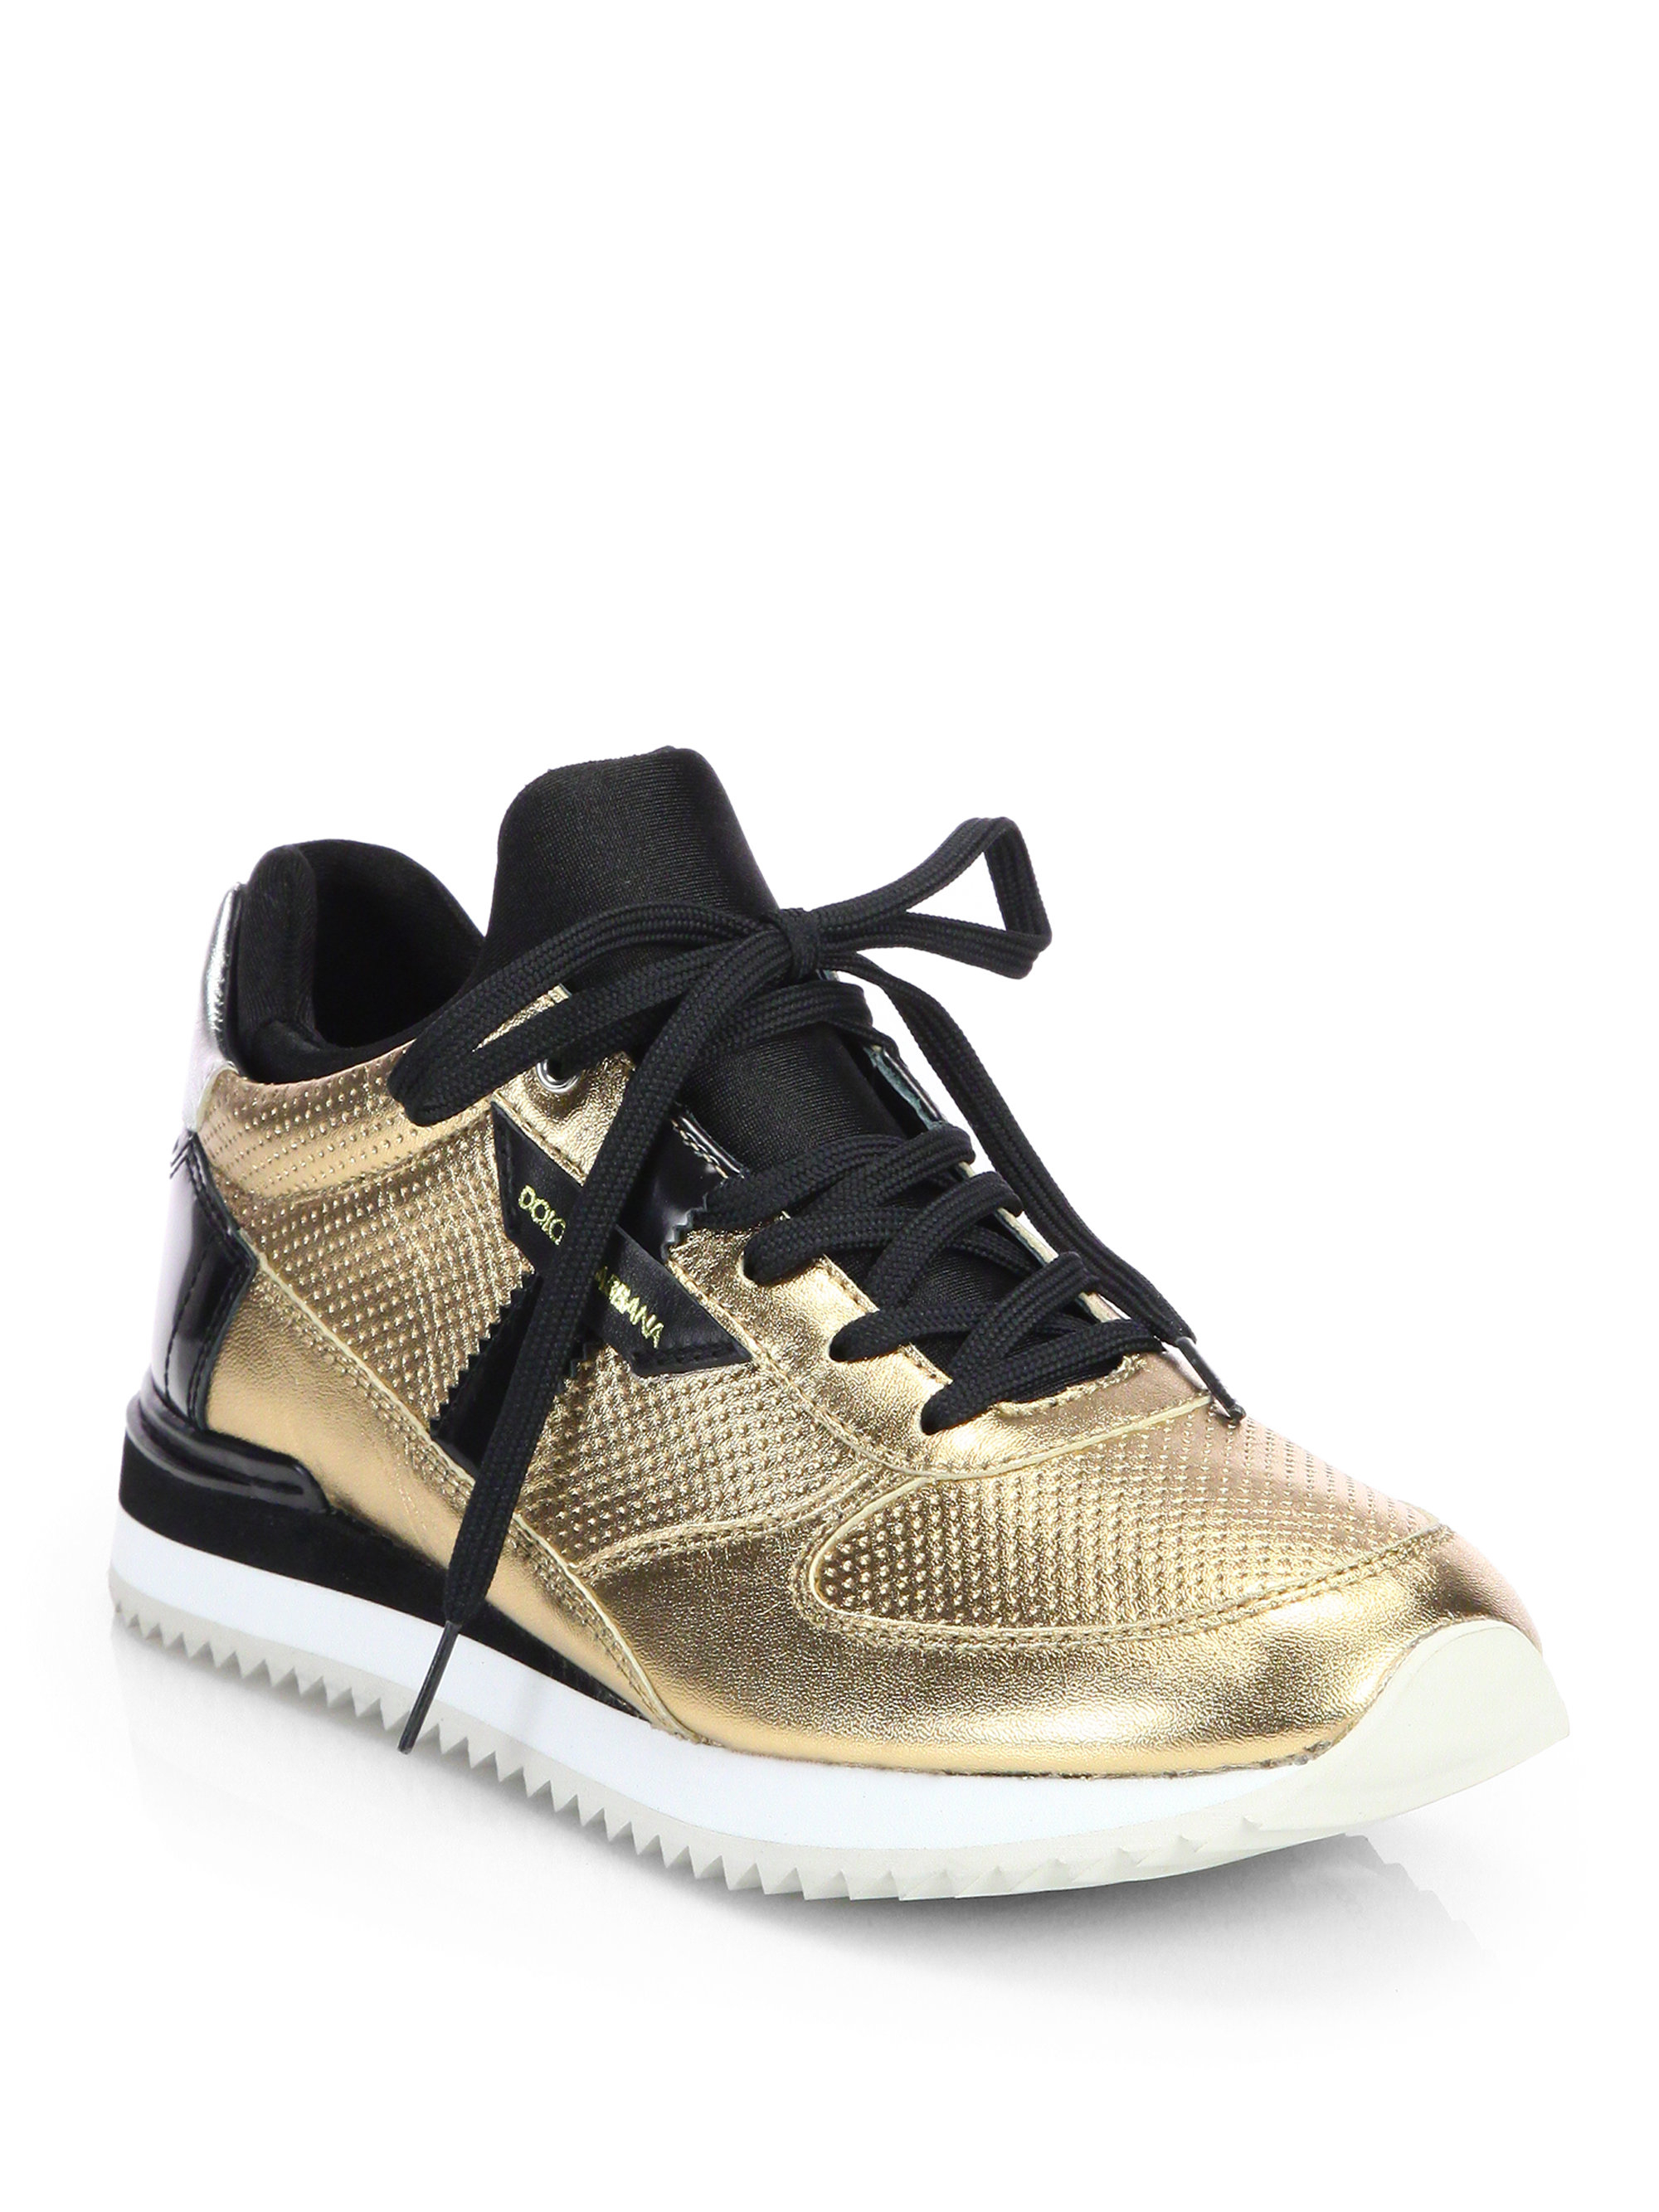 Lyst - Dolce   Gabbana Metallic   Patent Leather Lace-Up Sneakers in ... 41dc74b8eb